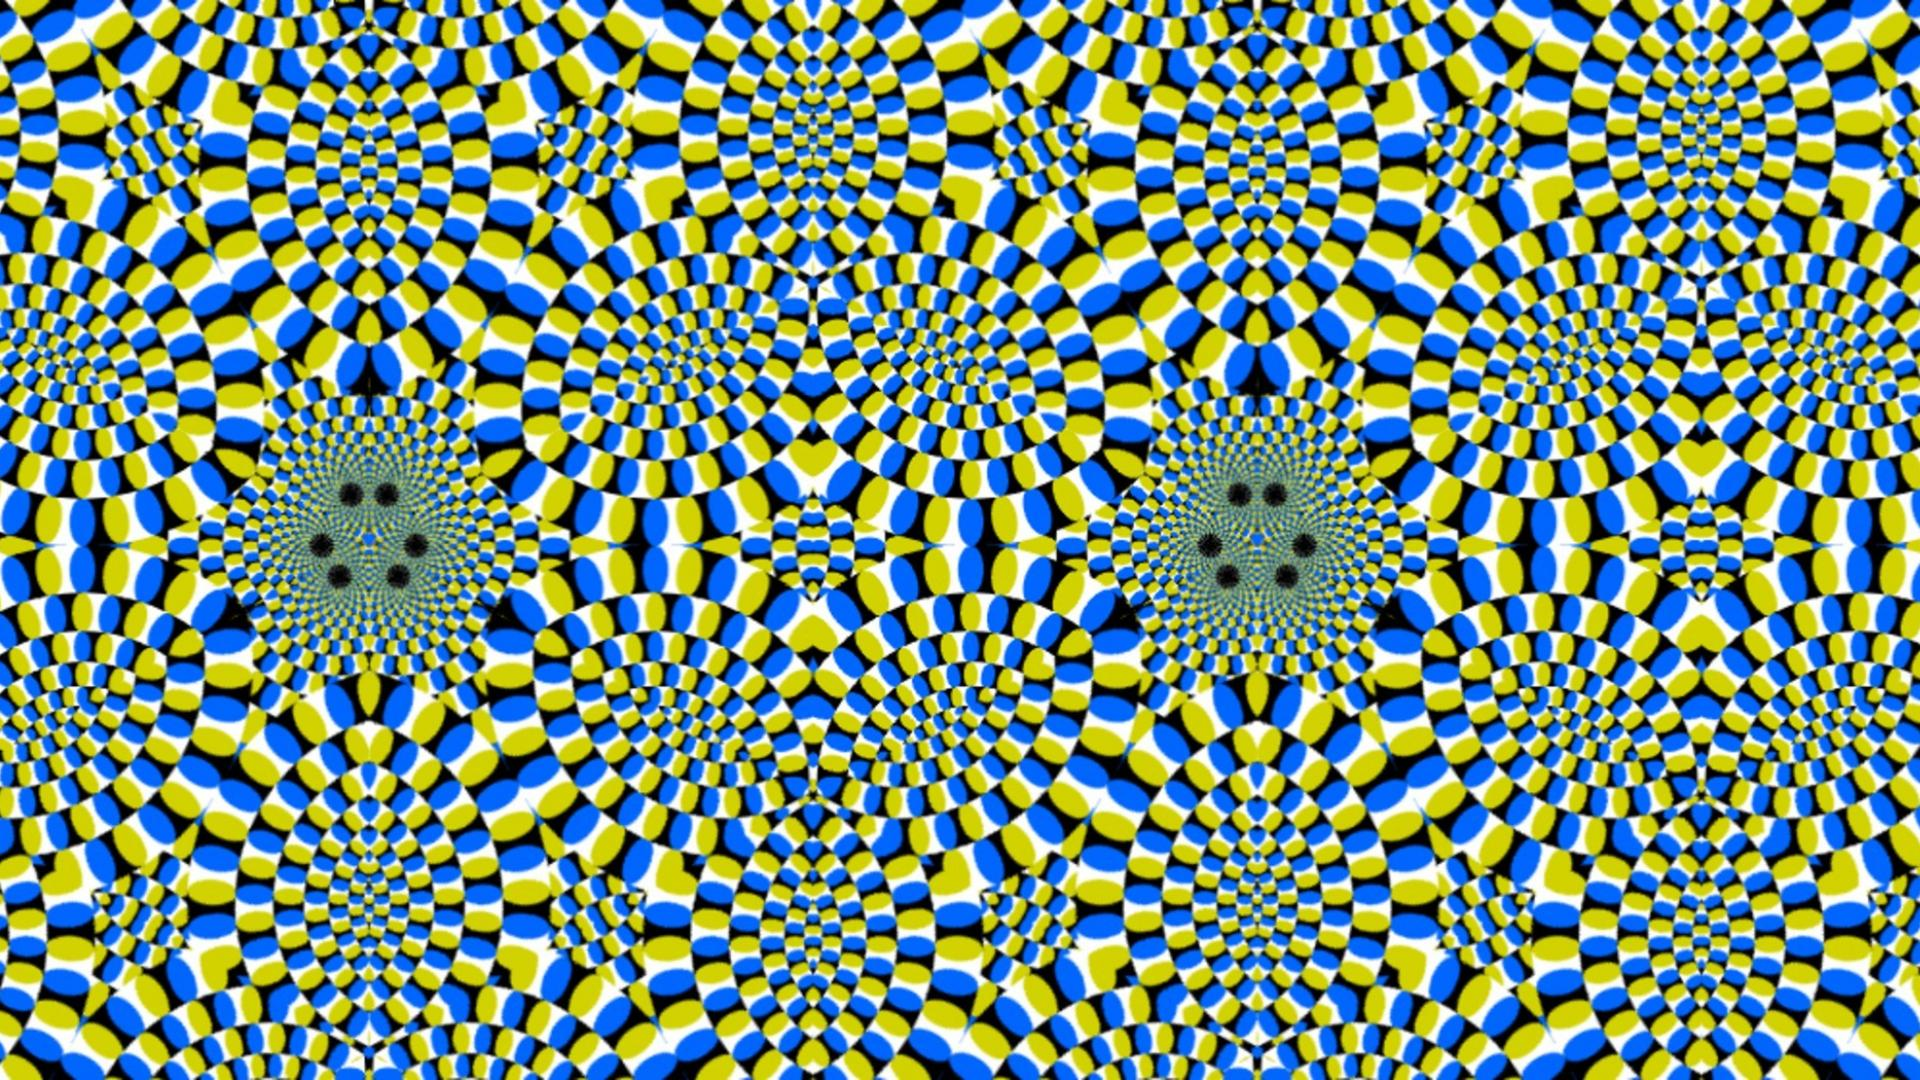 optical illusions pictures - HD1920×1080